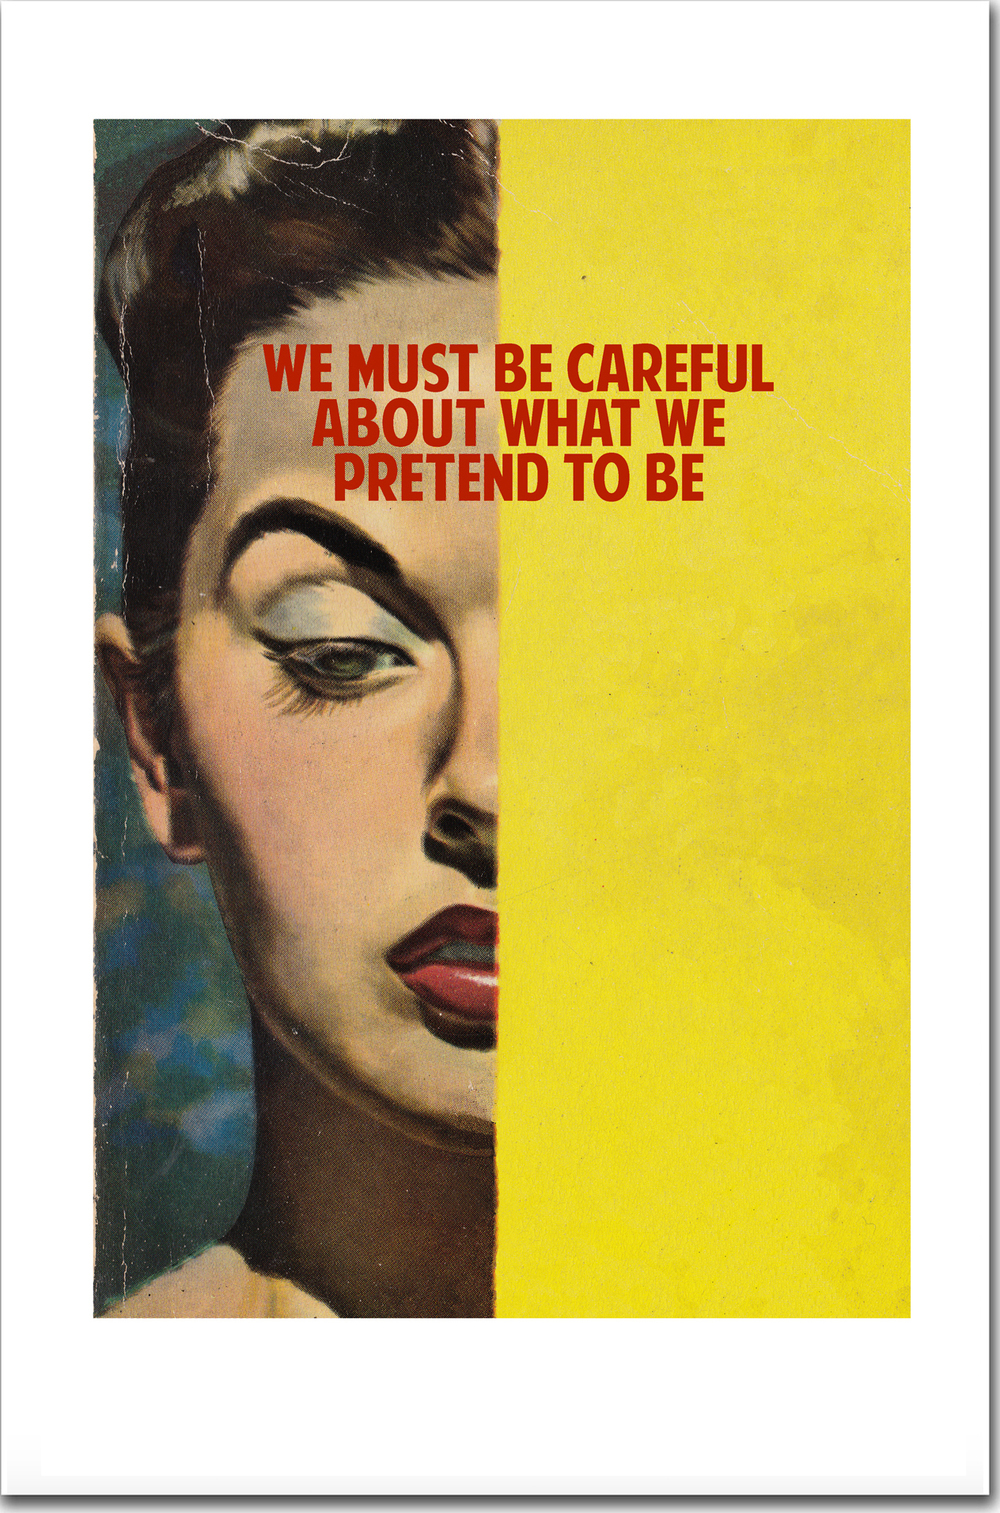 WE MUST BE CAREFUL ABOUT WHAT WE PRETEND TO BE, 2015     signed & dated   Giclee print with silk screen varnish   41 x 26 cm   edition of 125   £100 + VAT    you can buy this in our   shop